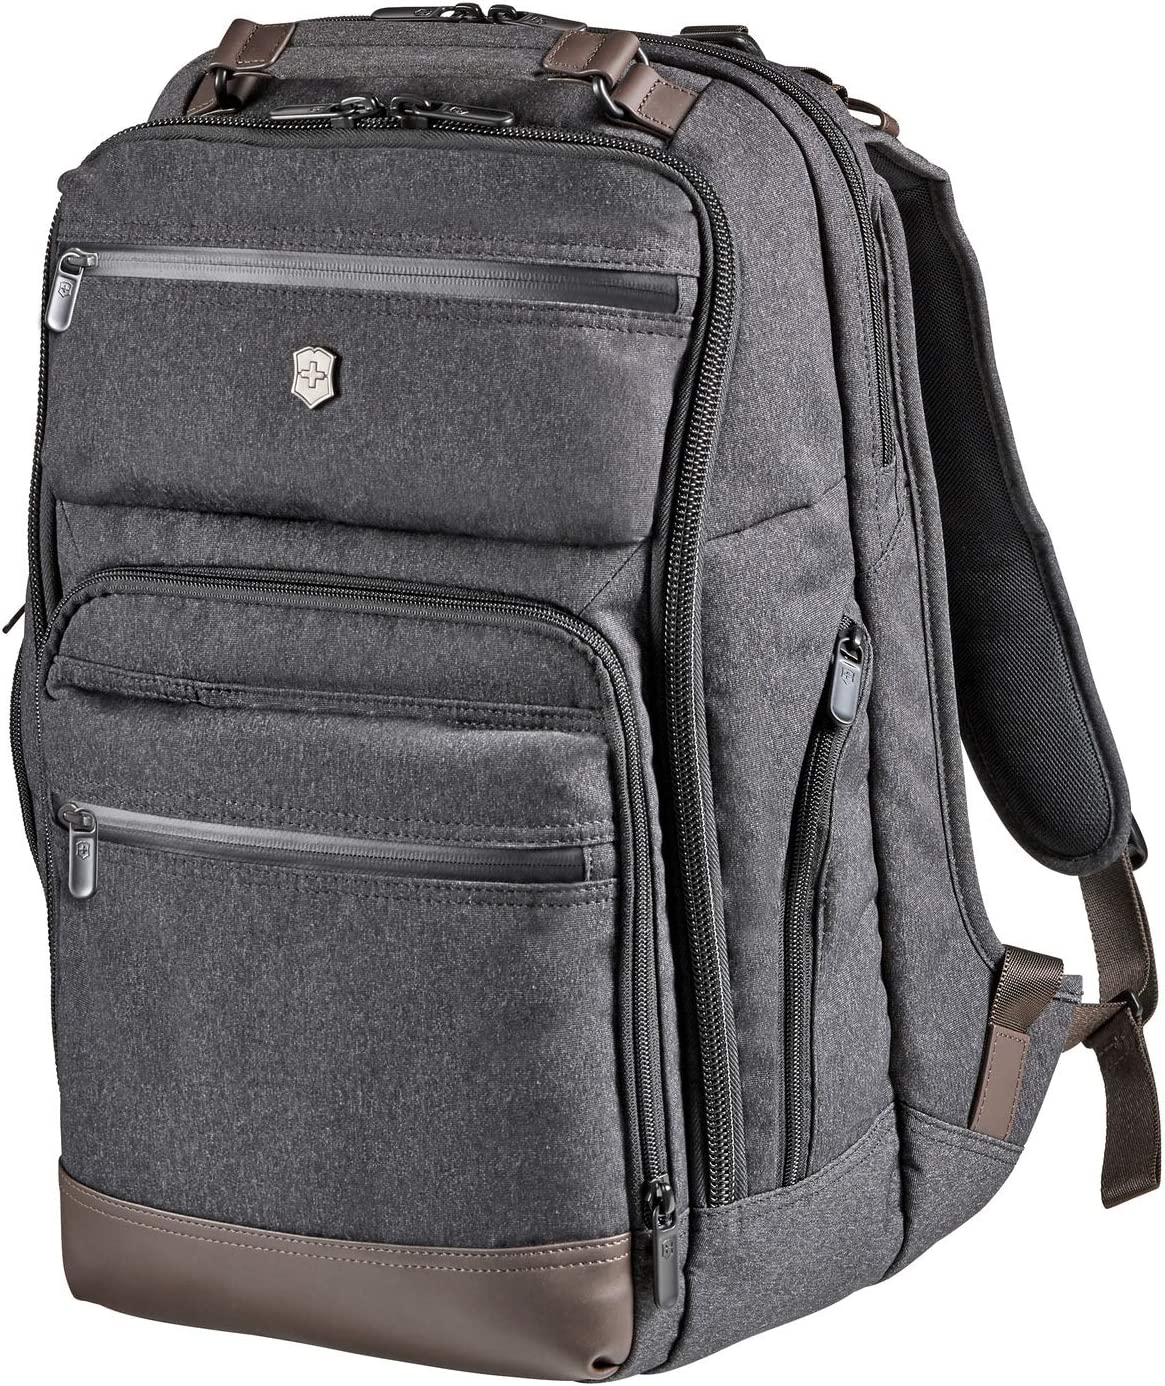 Victorinox Architecture Urban Rath Laptop Backpack, Grey/Brown, 18.1-inch